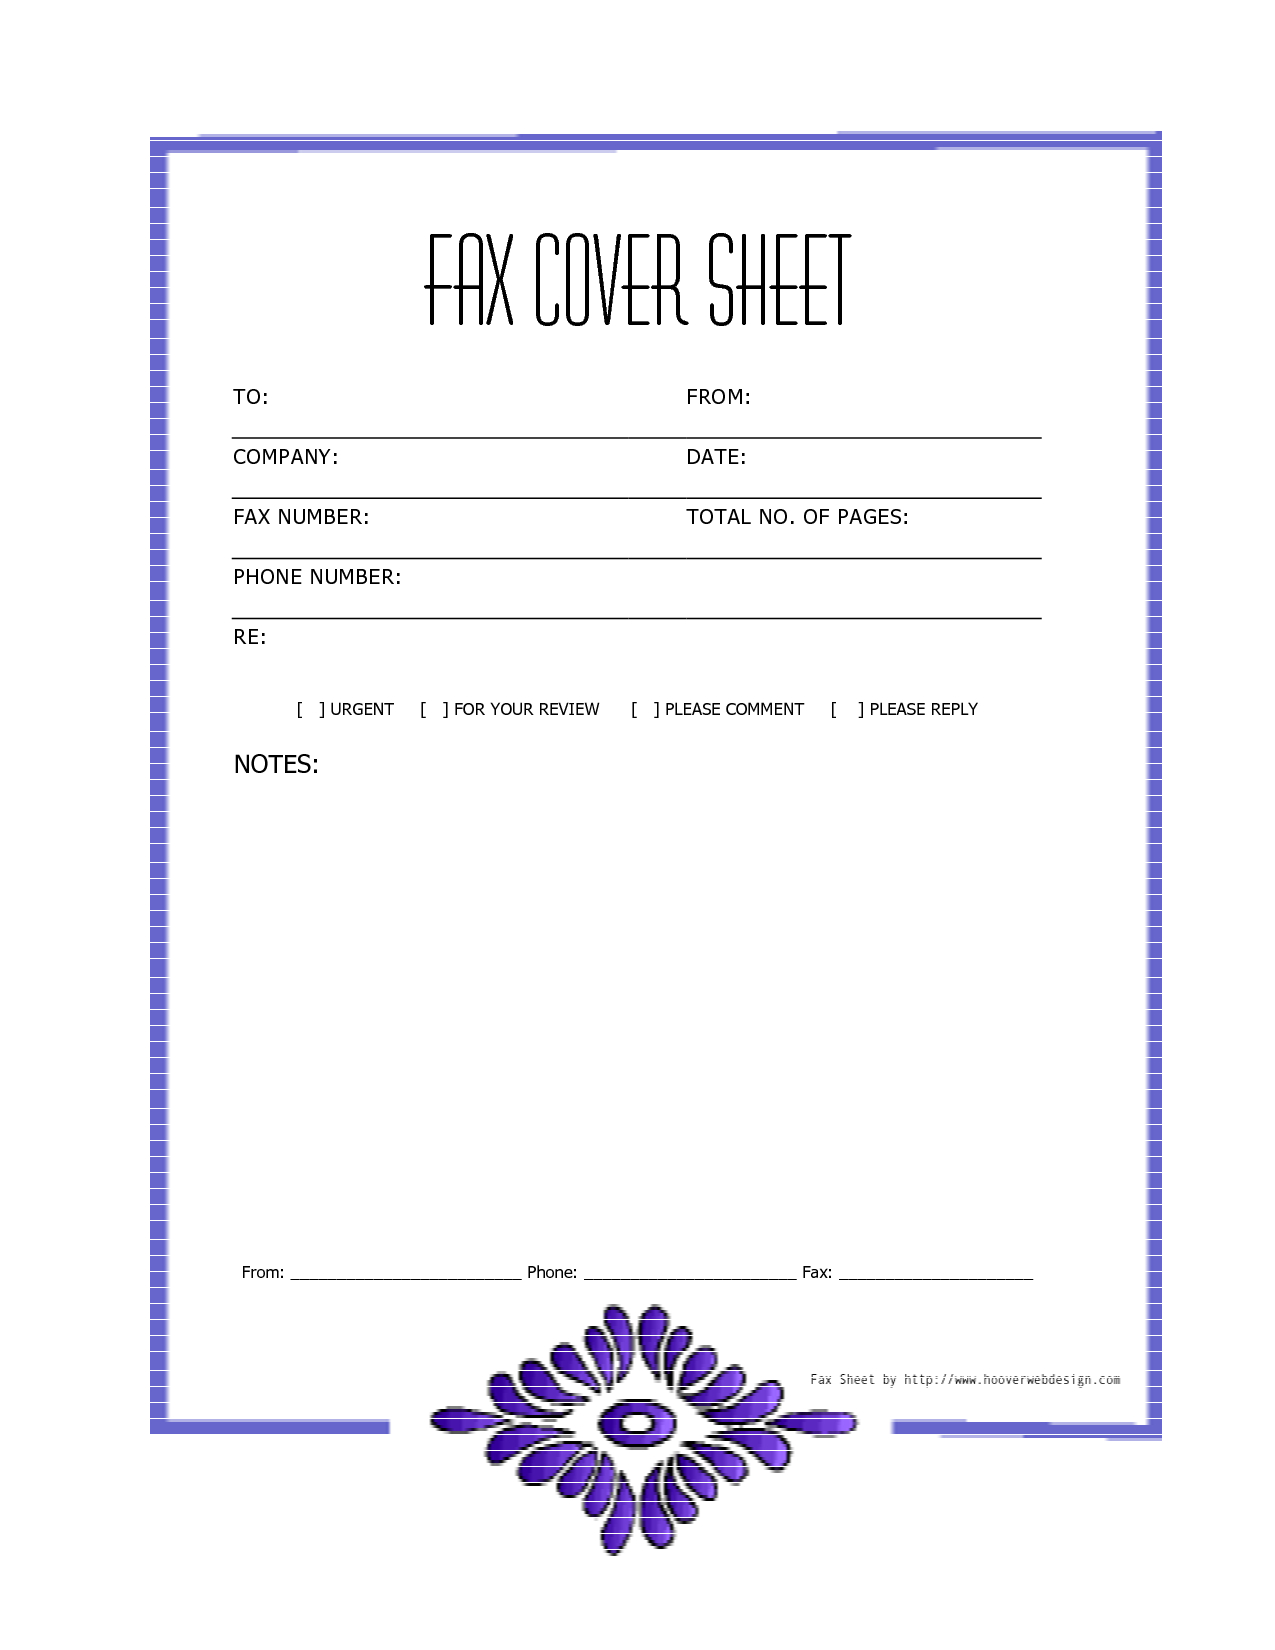 Fax Cover Letter Template Word - Free Downloads Fax Covers Sheets